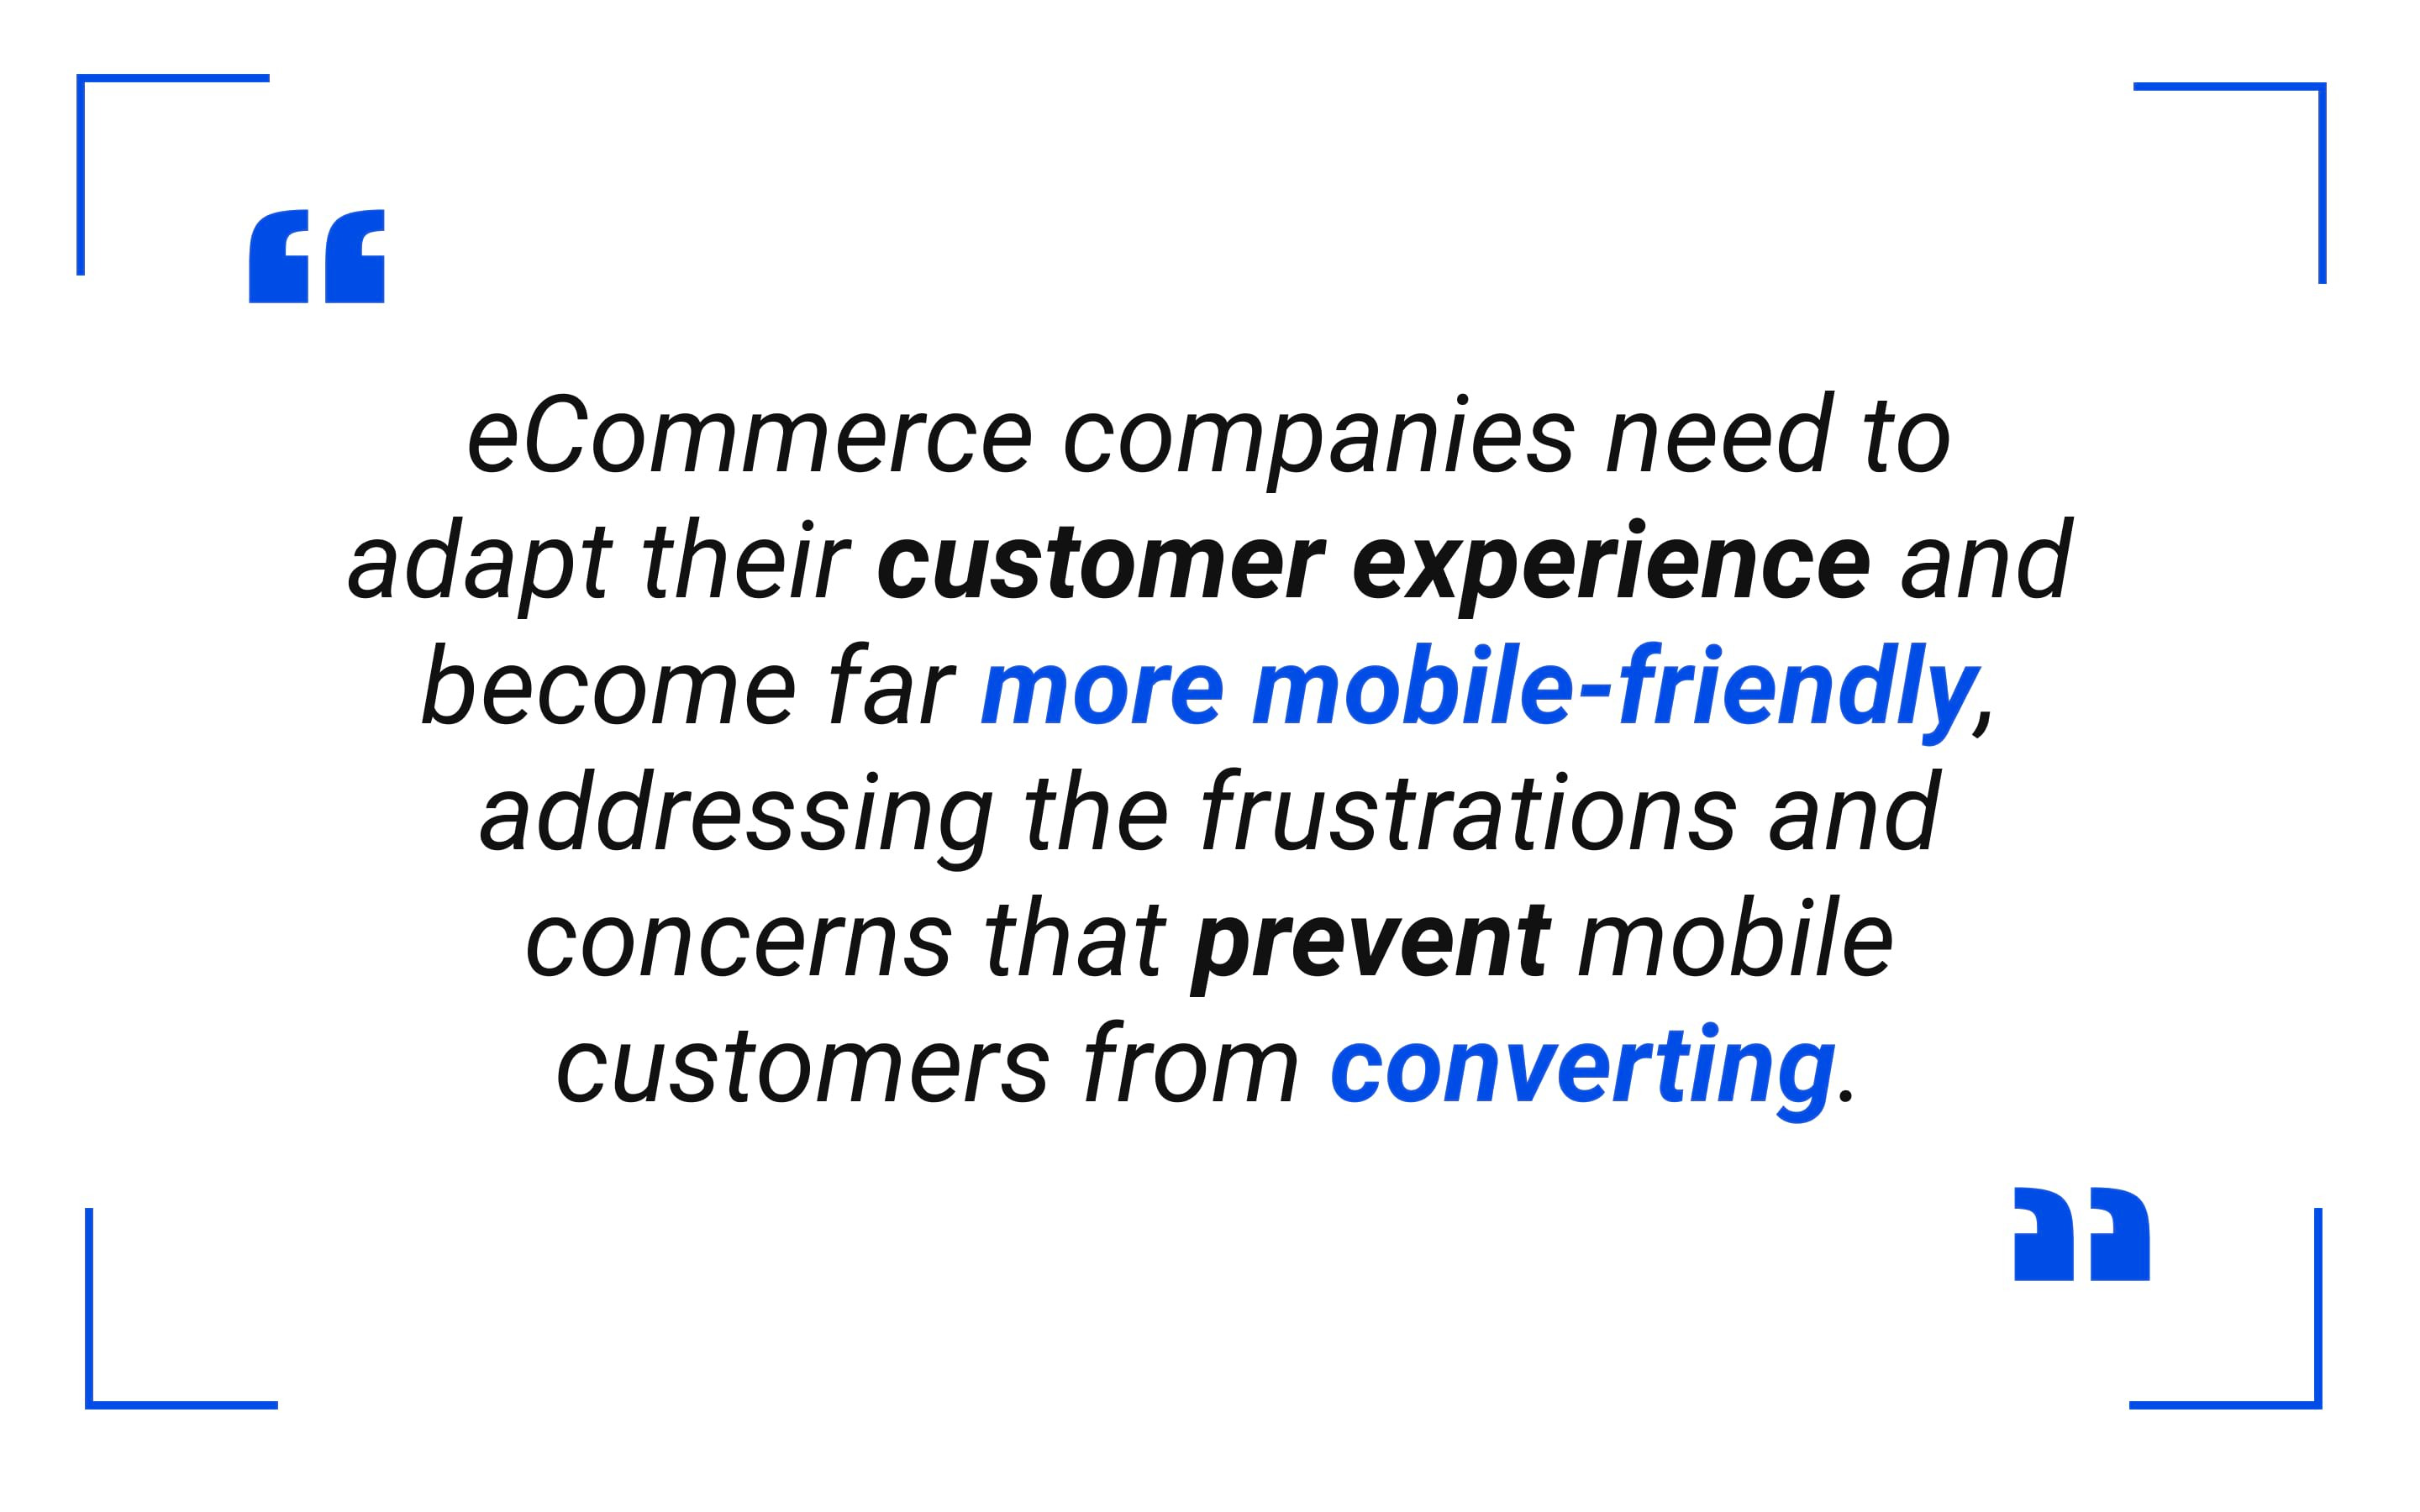 eCommerce companies need to adapt their customer experience